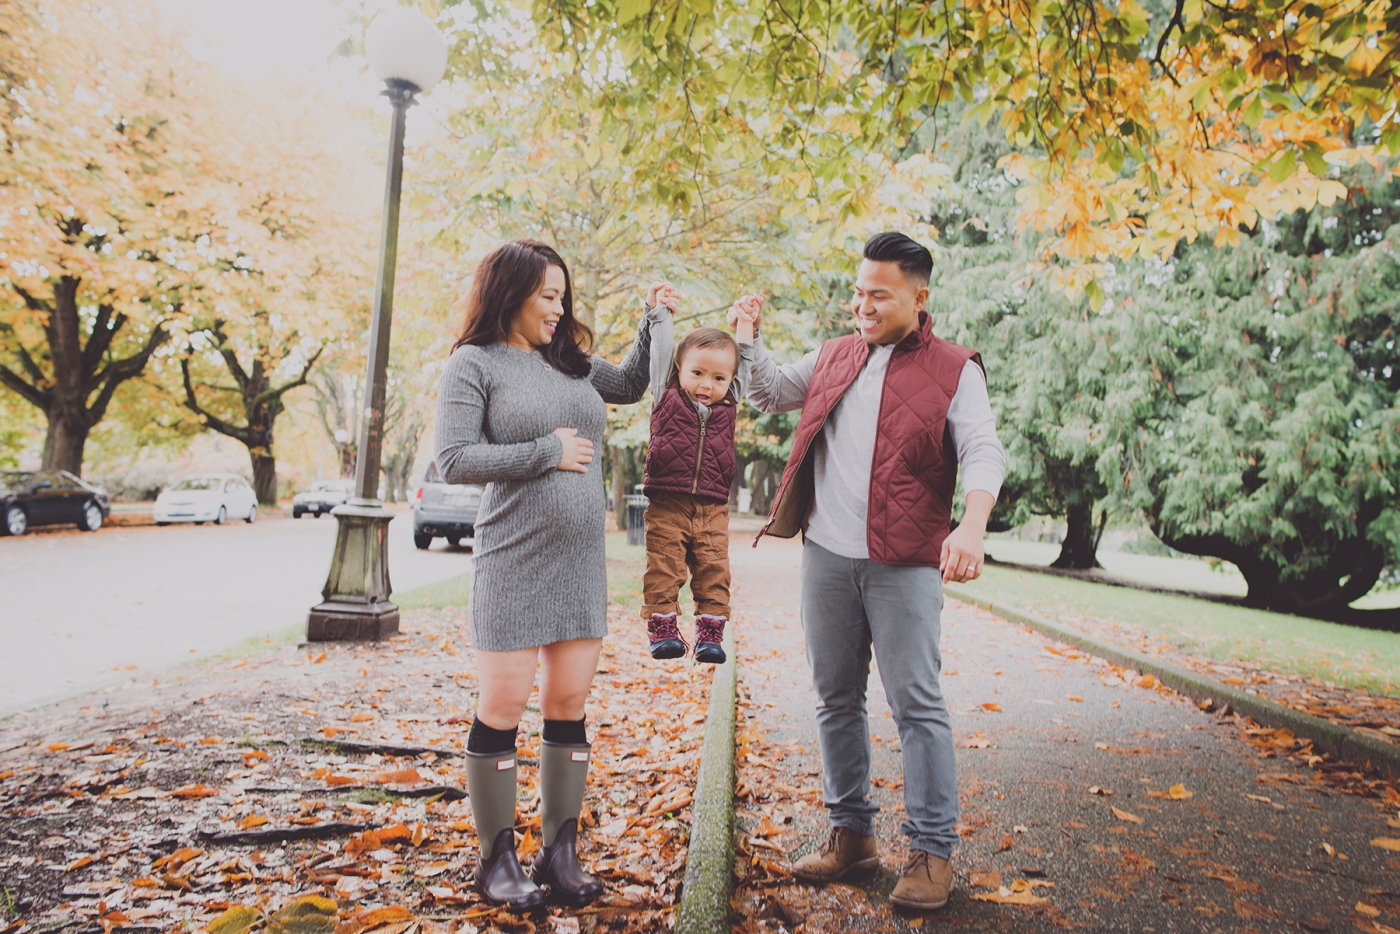 paula_p_maternity_the_royal_squirrel_seattle_family_photographer_2016_dsc_8000